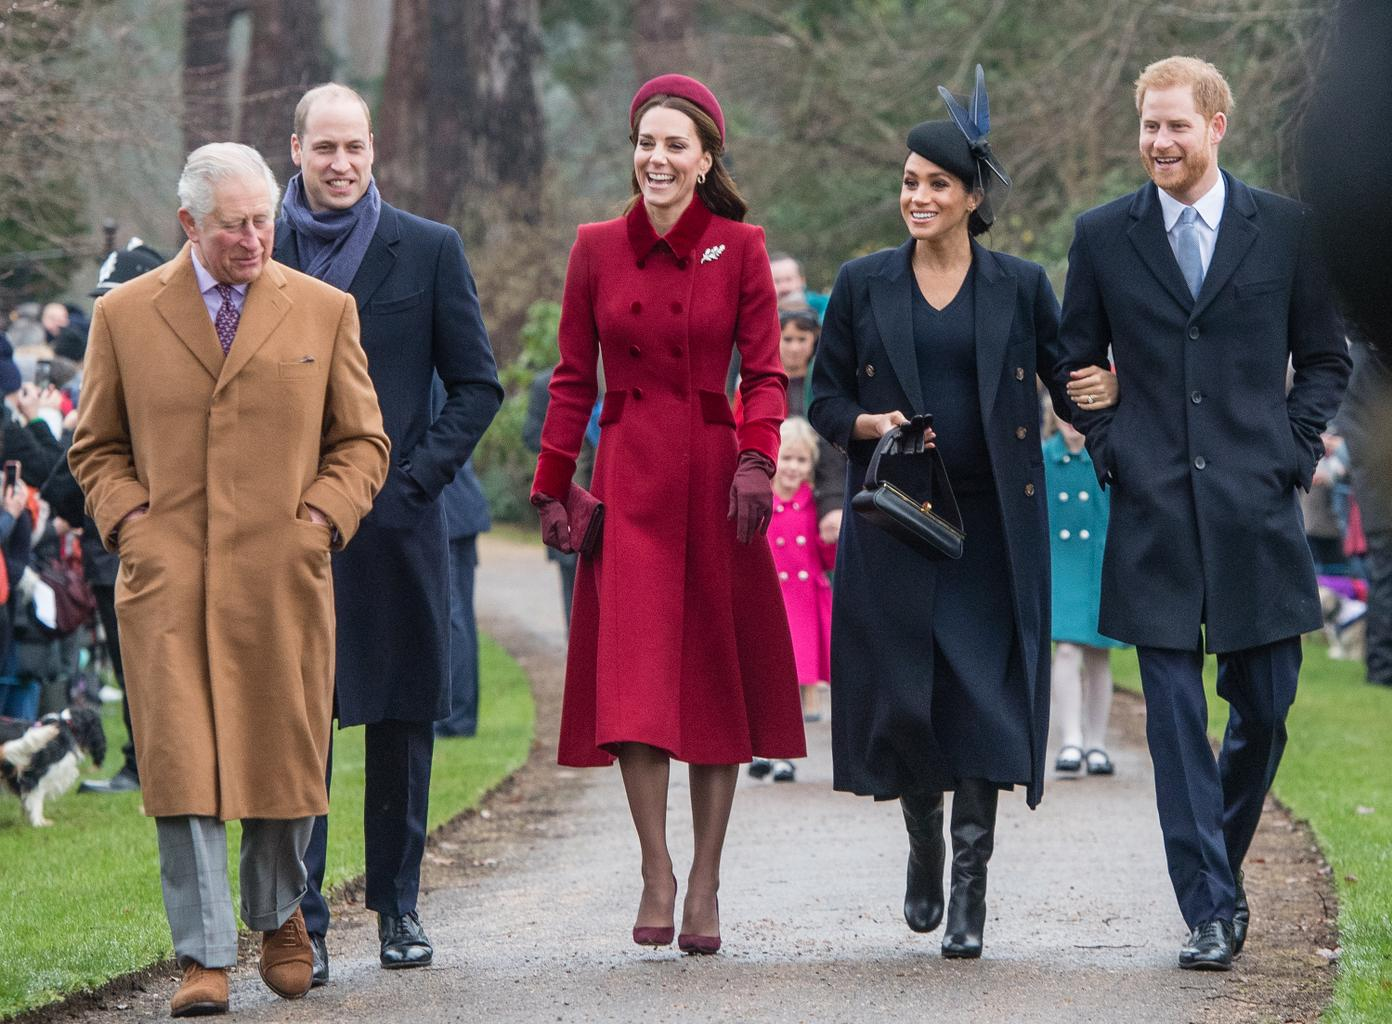 Kate Middleton dresses up for Christmas Day with the royal family